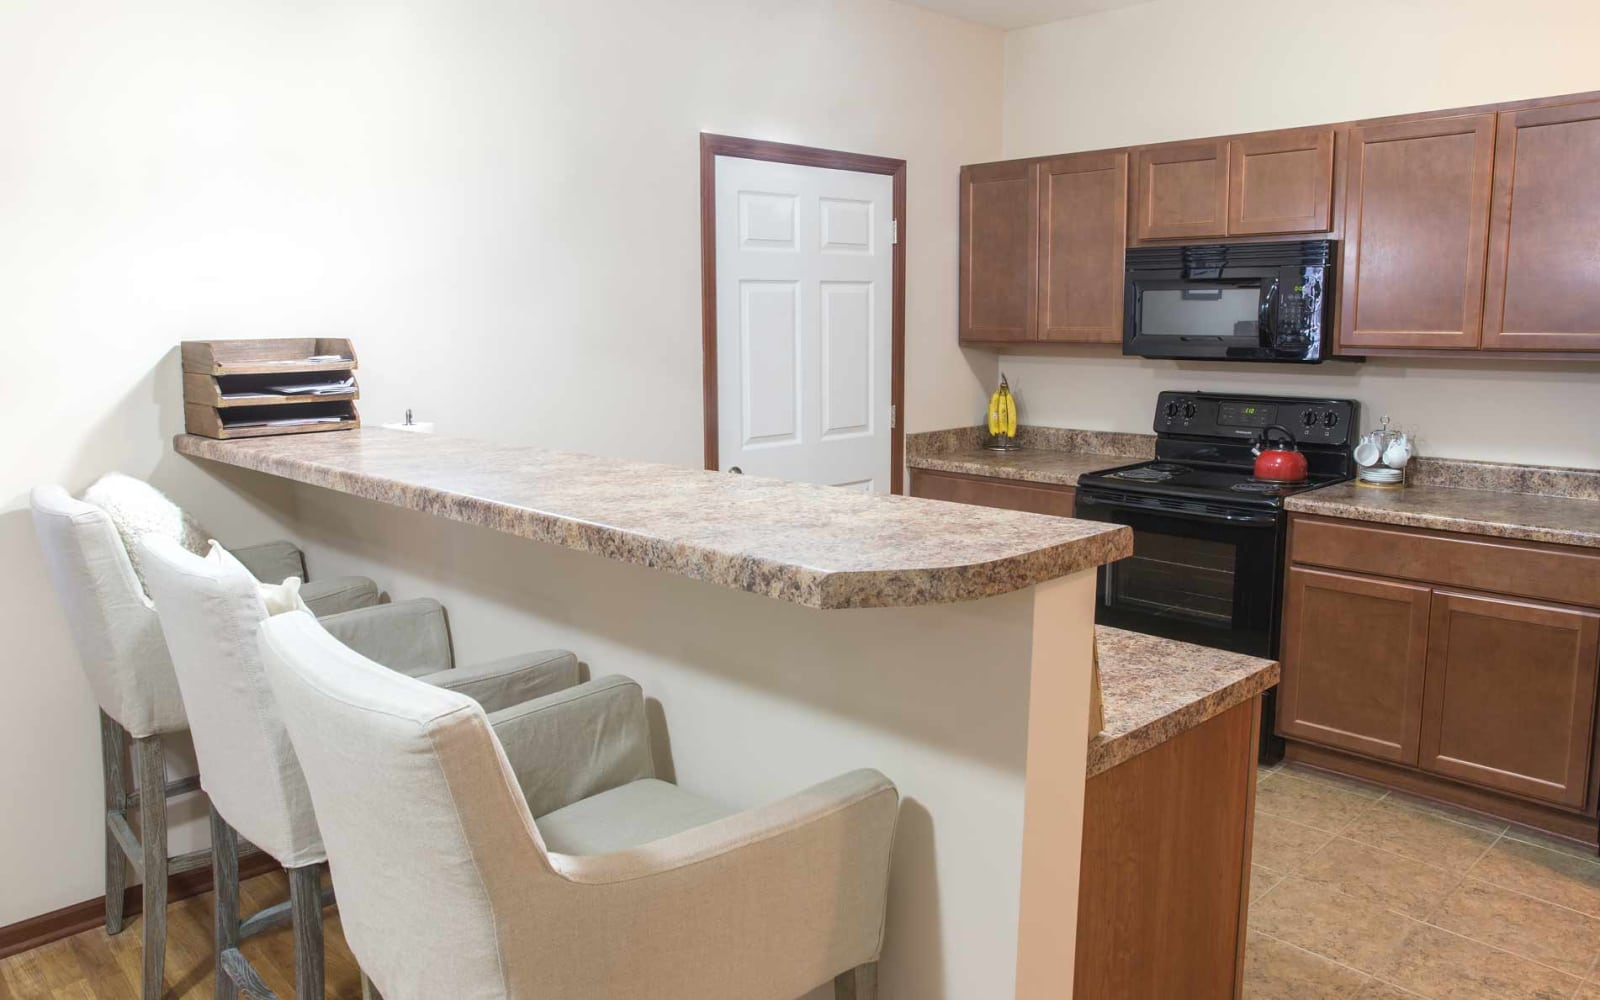 Apartment kitchen with bar seating at Woodland Reserve in Ankeny, Iowa